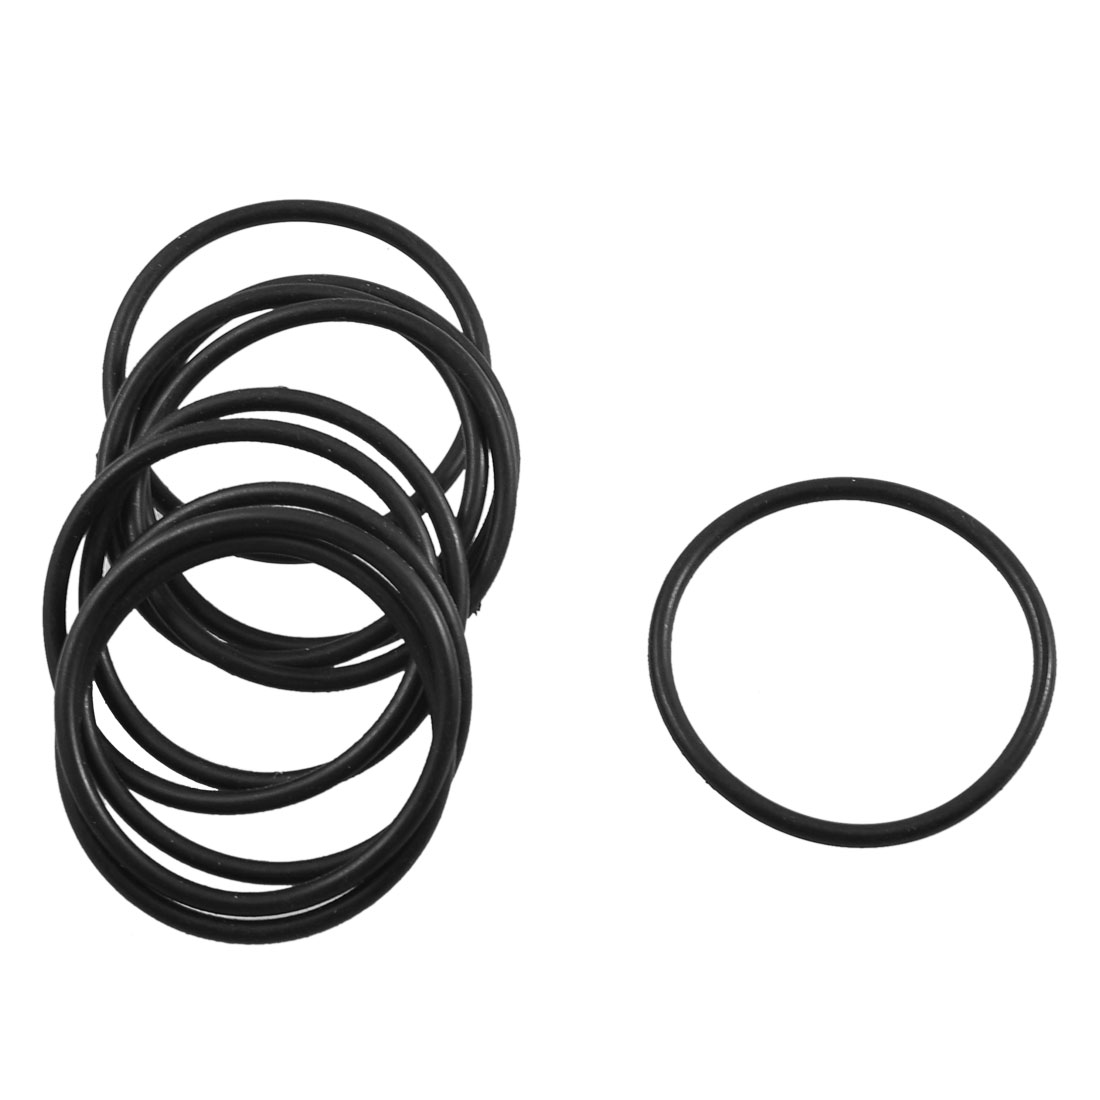 10 Pcs Black Rubber O Ring Oil Seal Sealing Gasket 26.5mm x 1.8mm